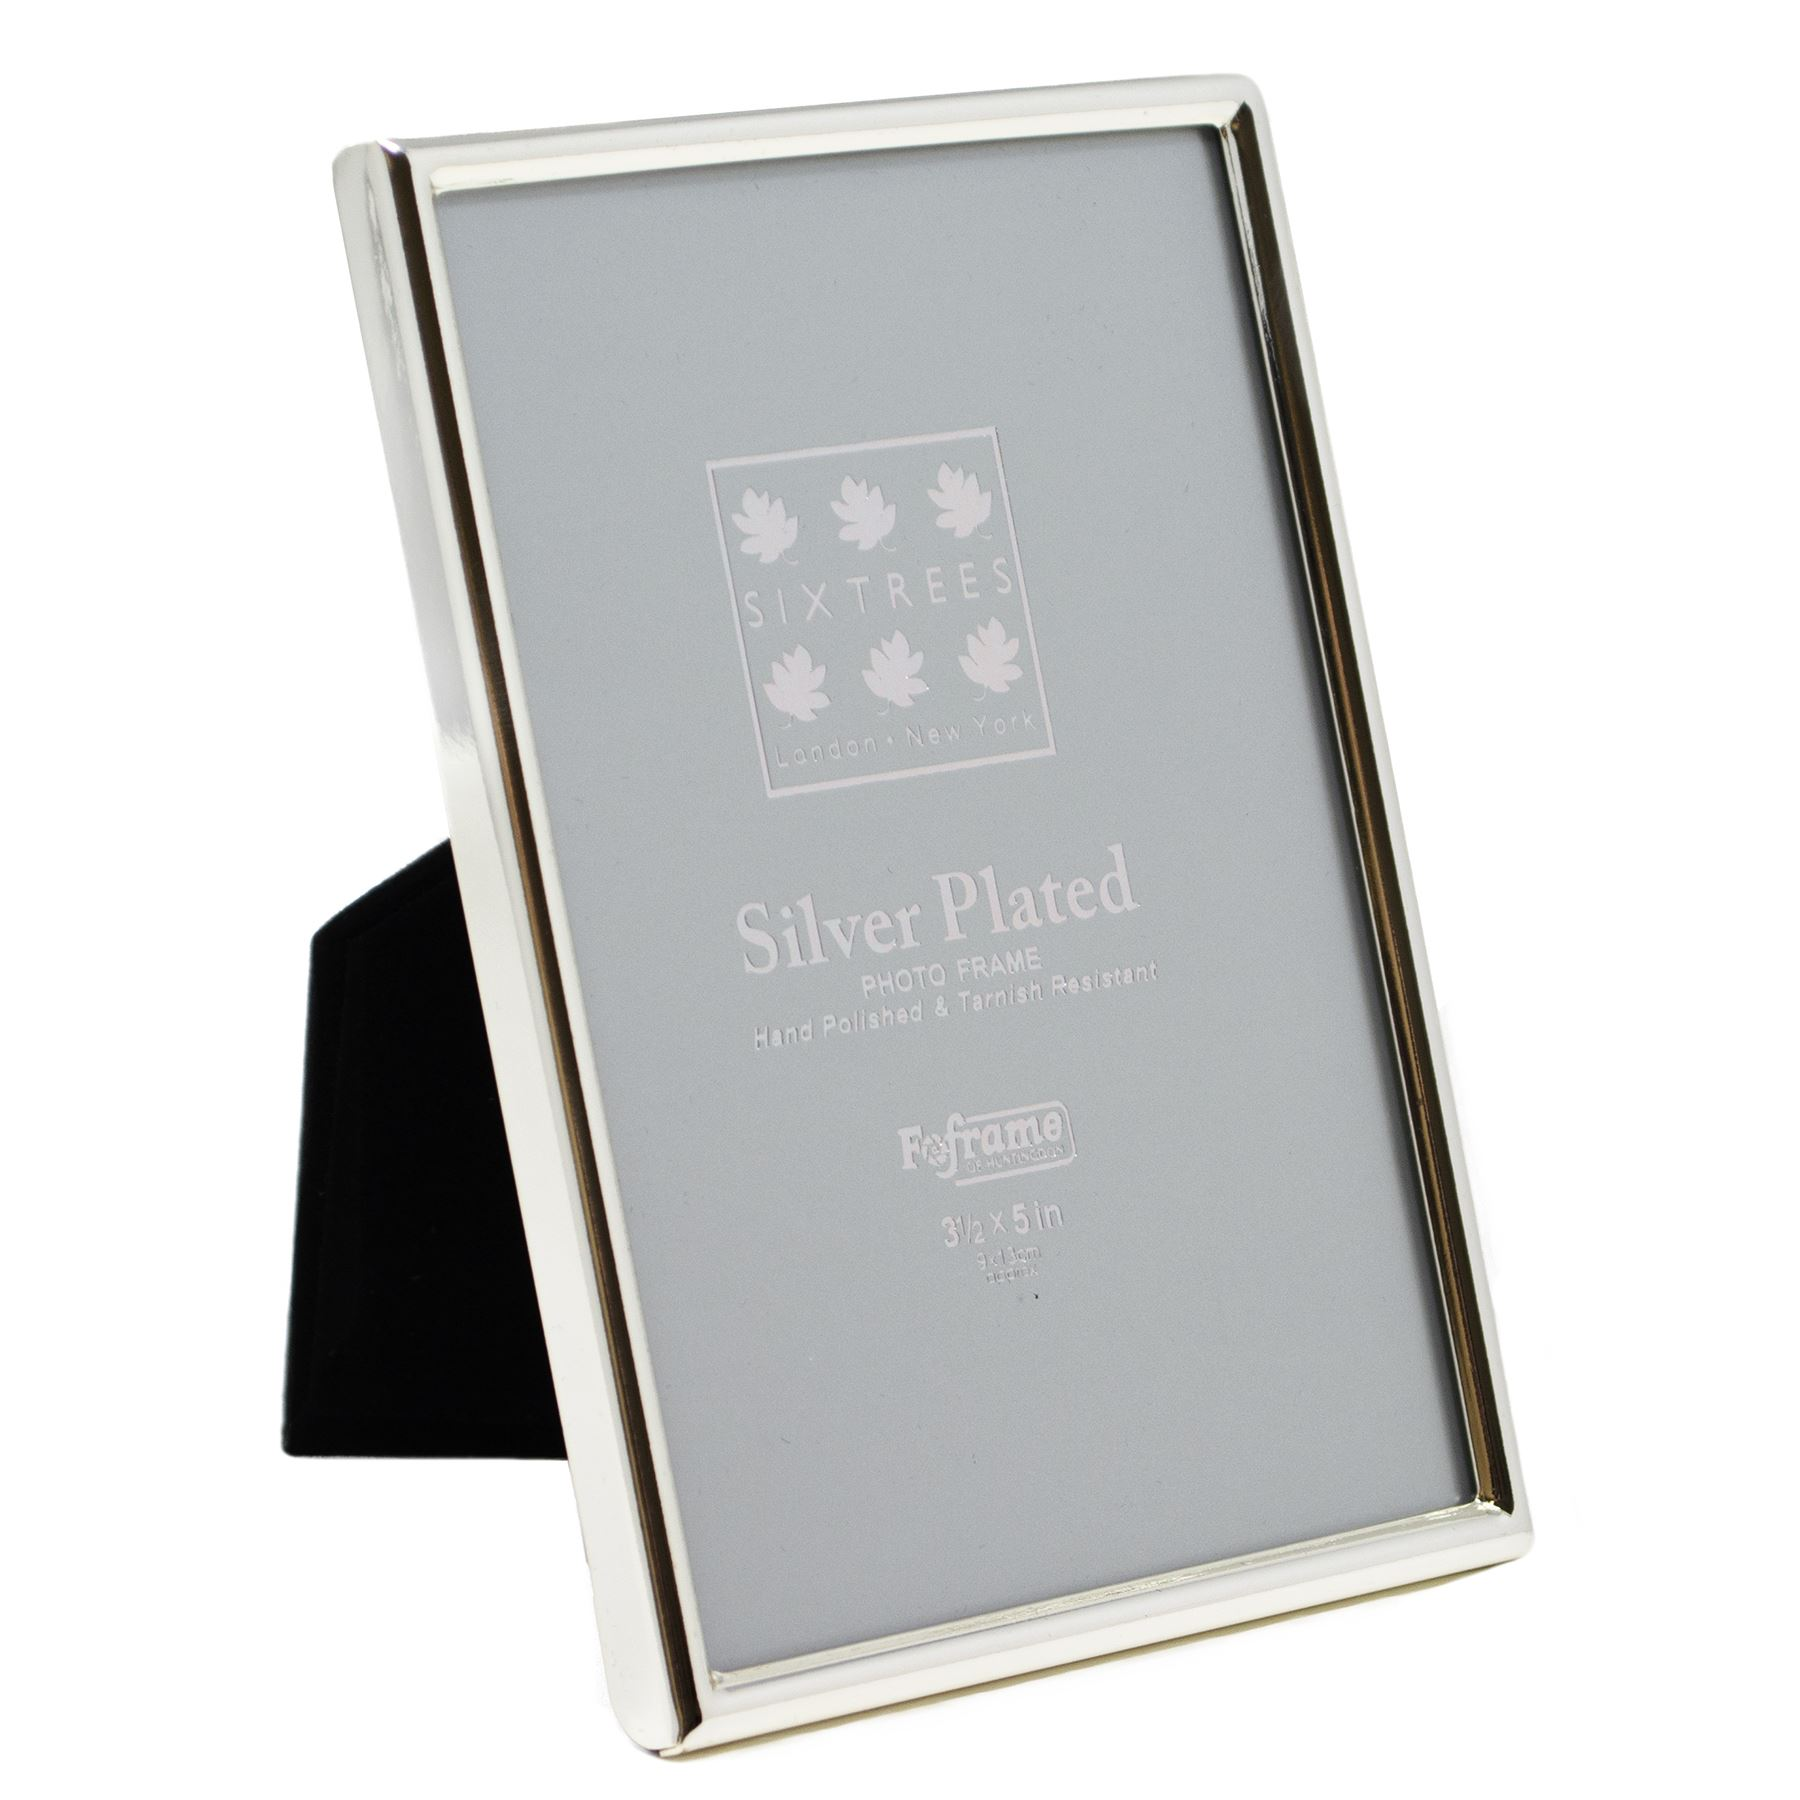 Sixtrees Cambridge Silver Plated 35 X 5 Small Picture Photo Frame